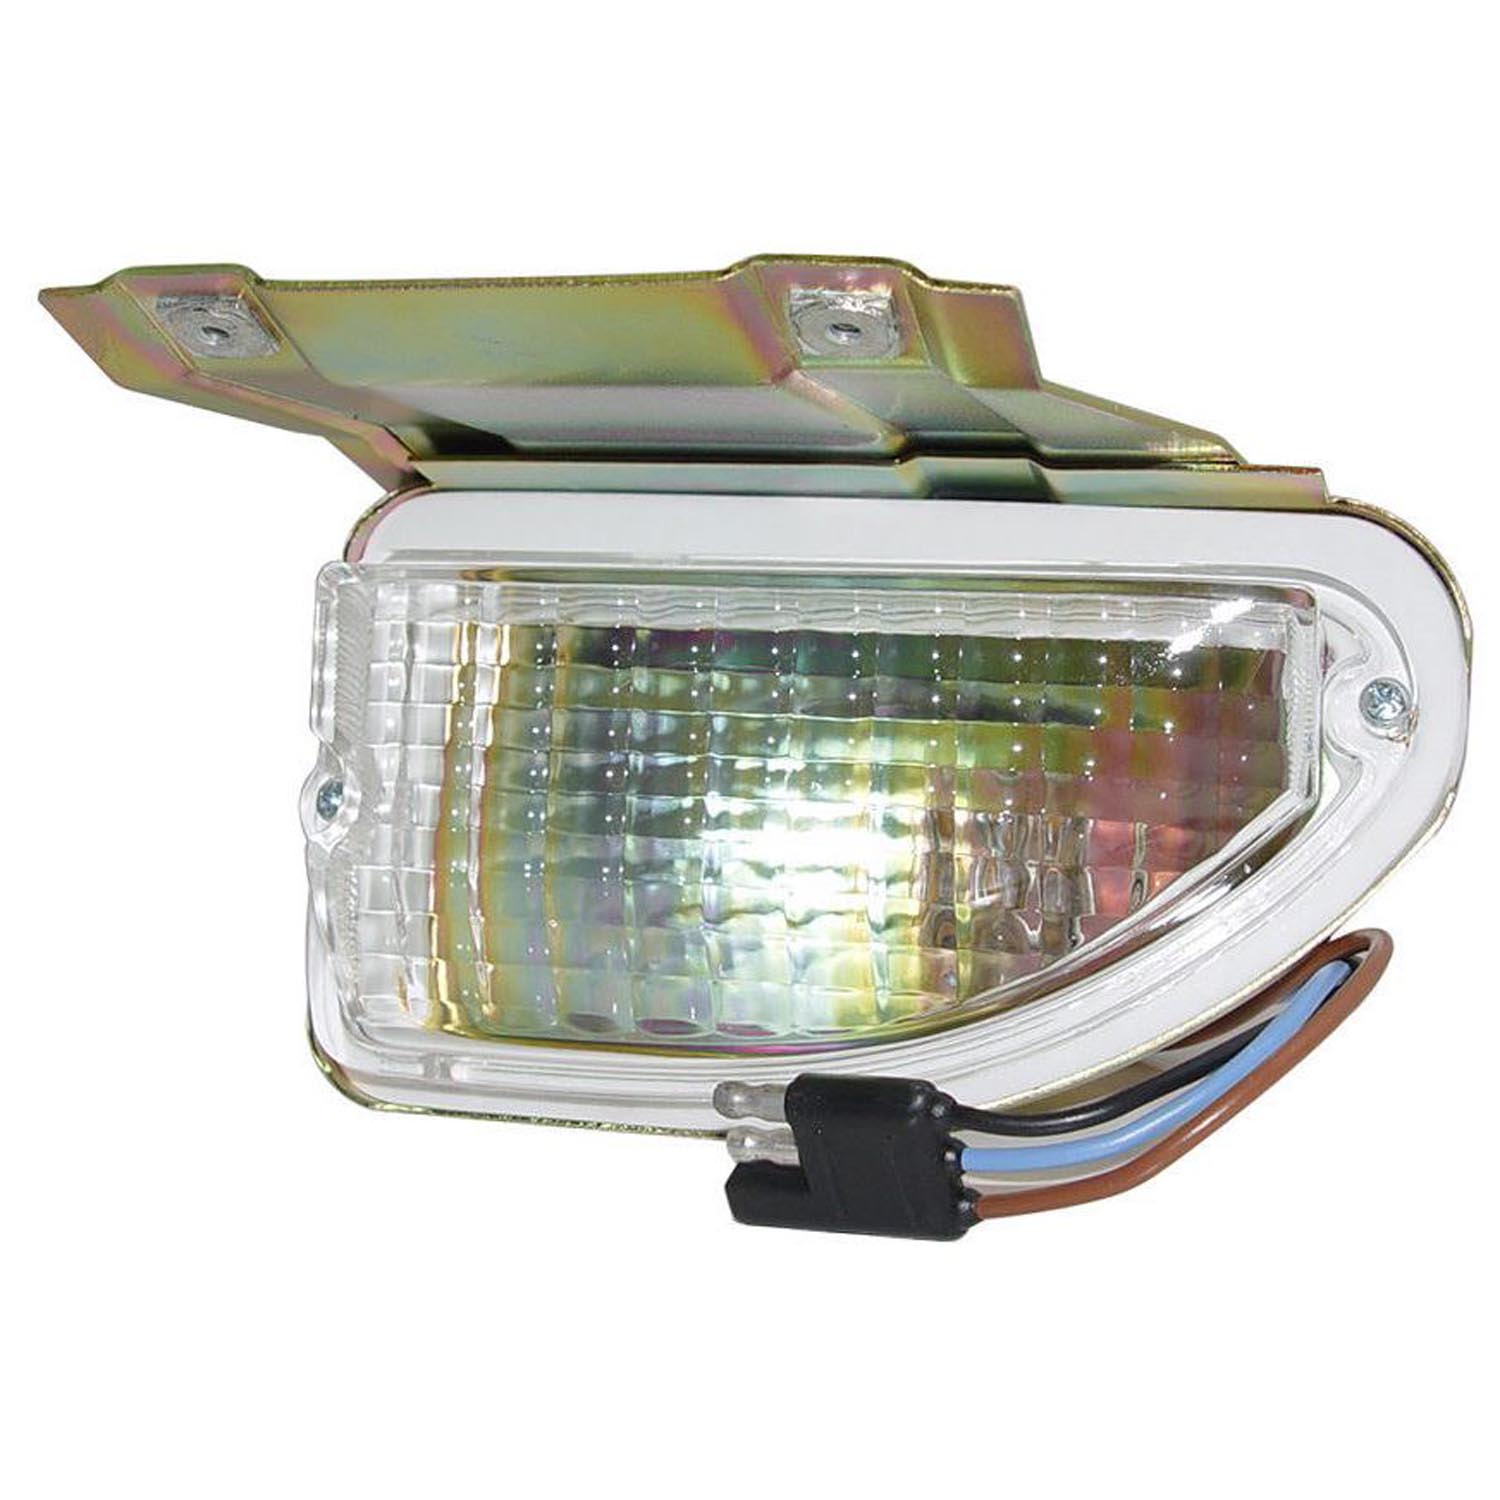 1969 Ford Mustang Parking Lamp Assembly LH NEW!